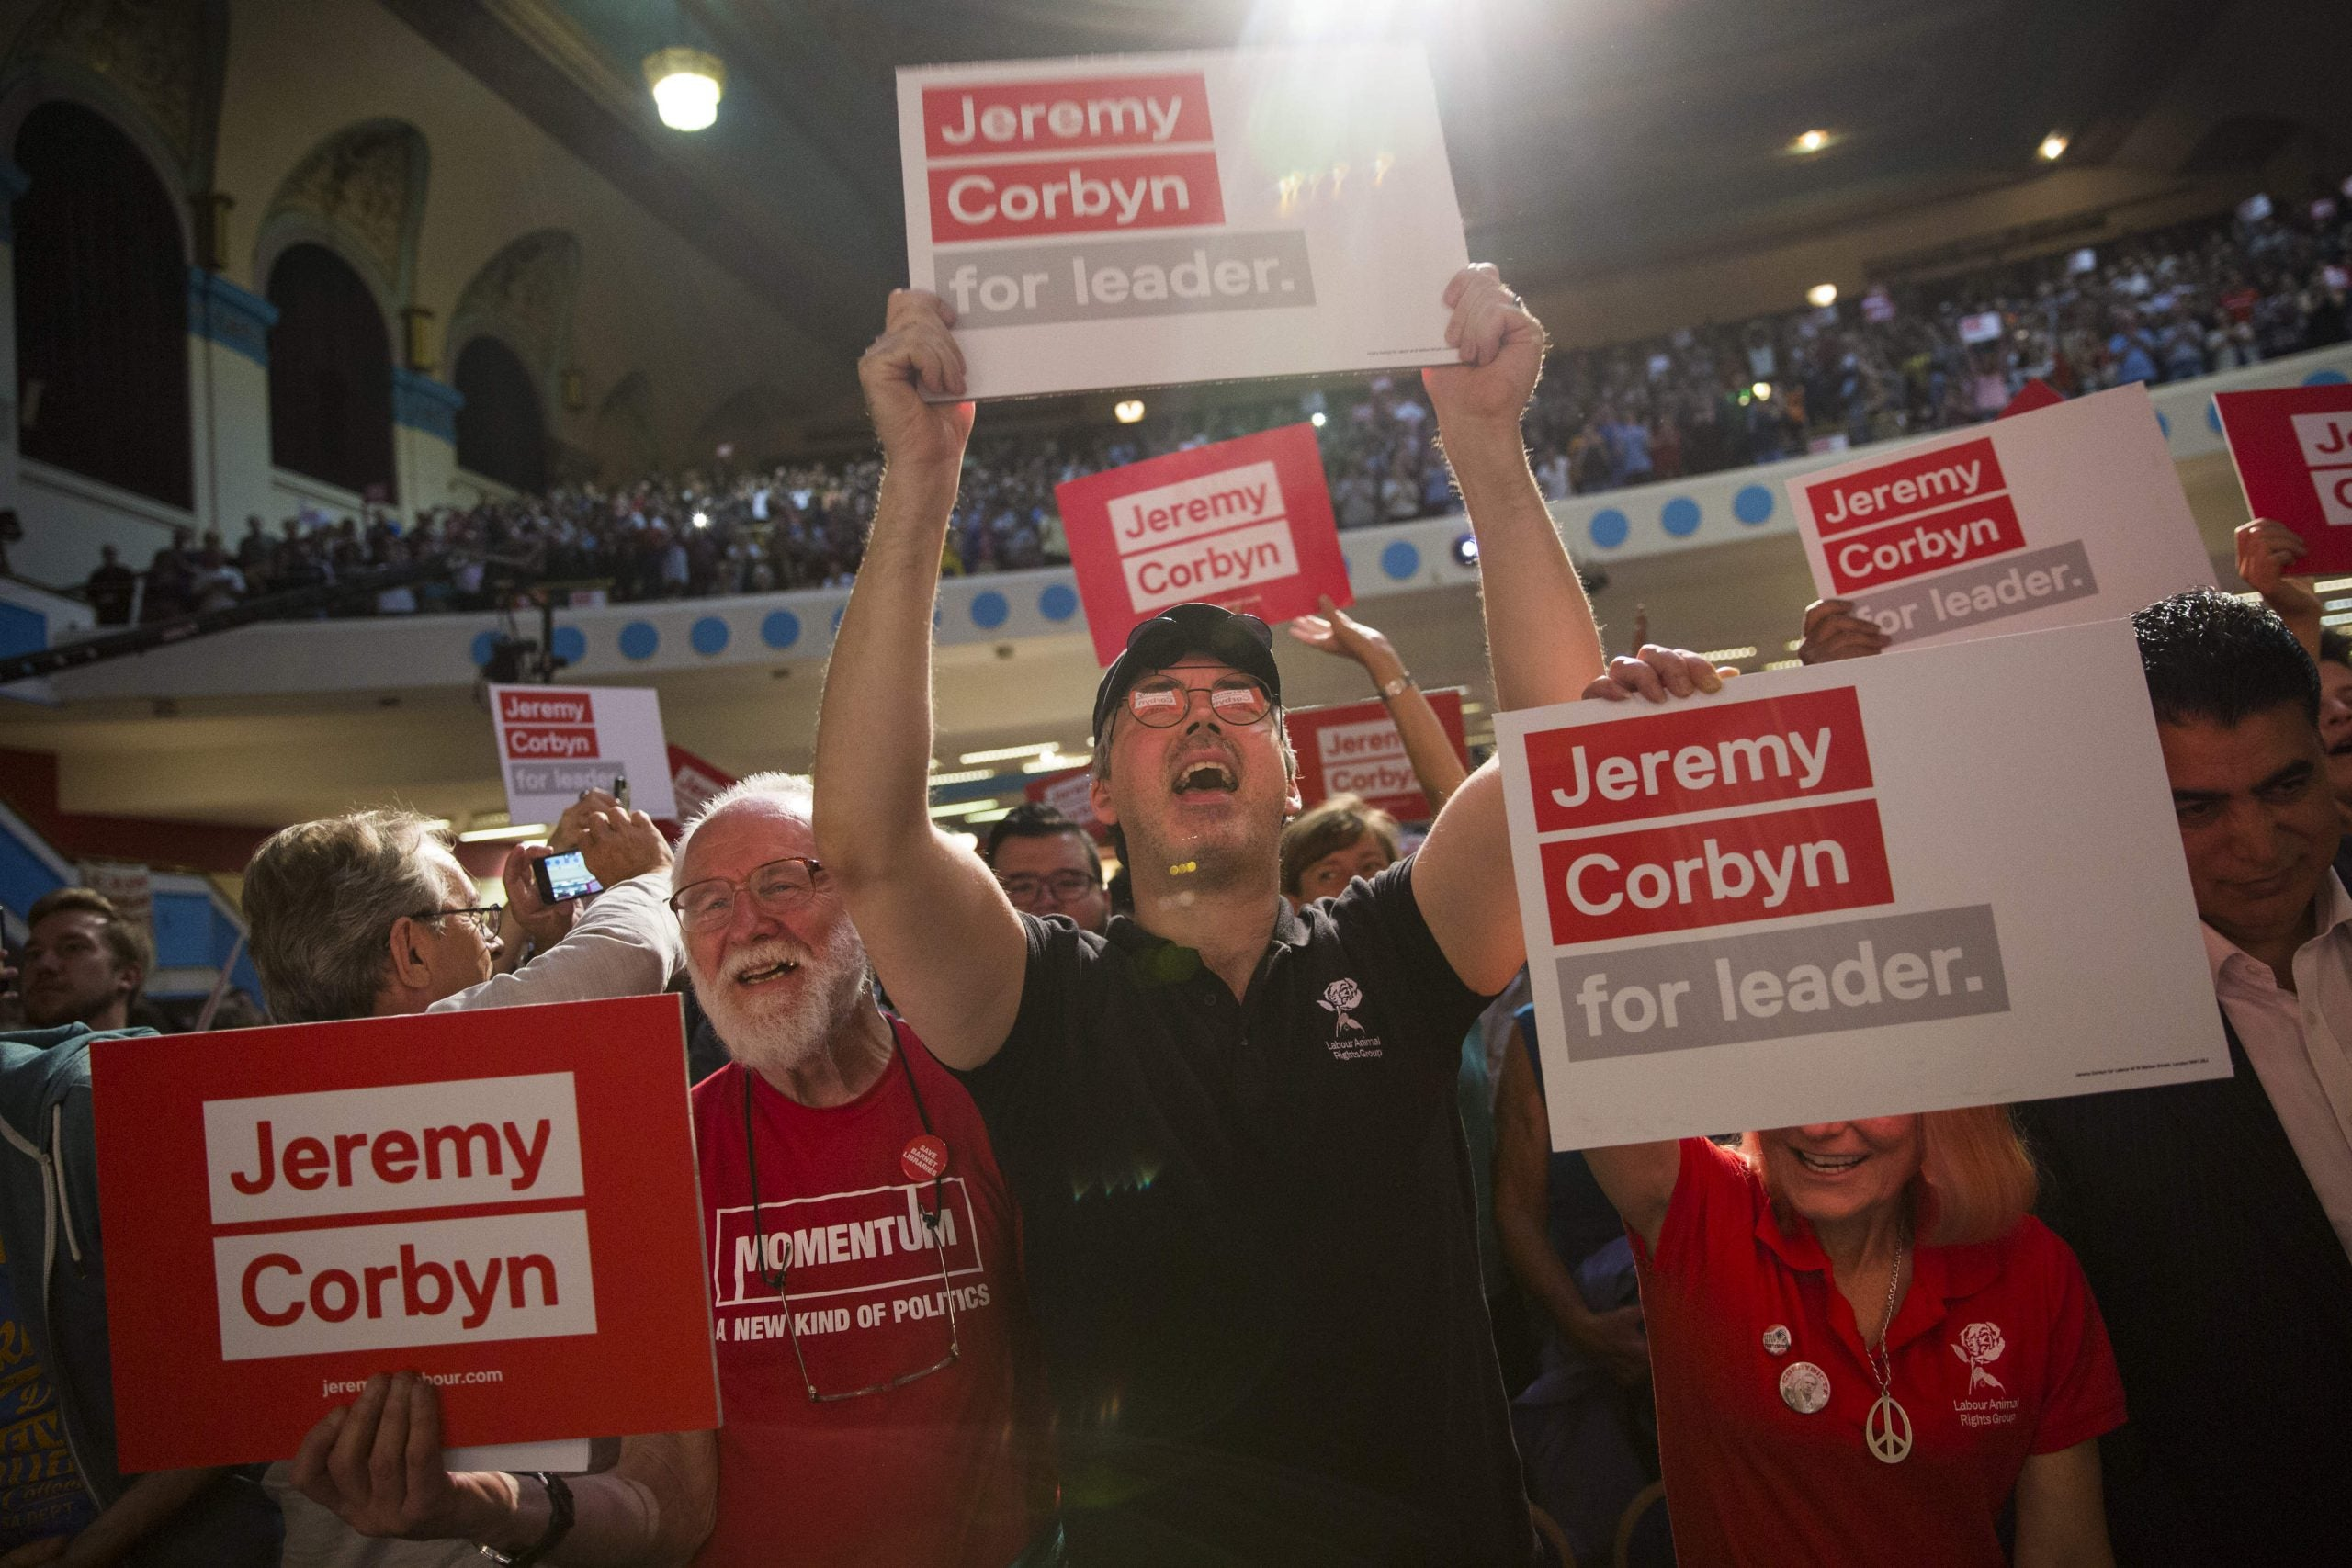 Corbynism isn't a social movement and Labour shouldn't be one